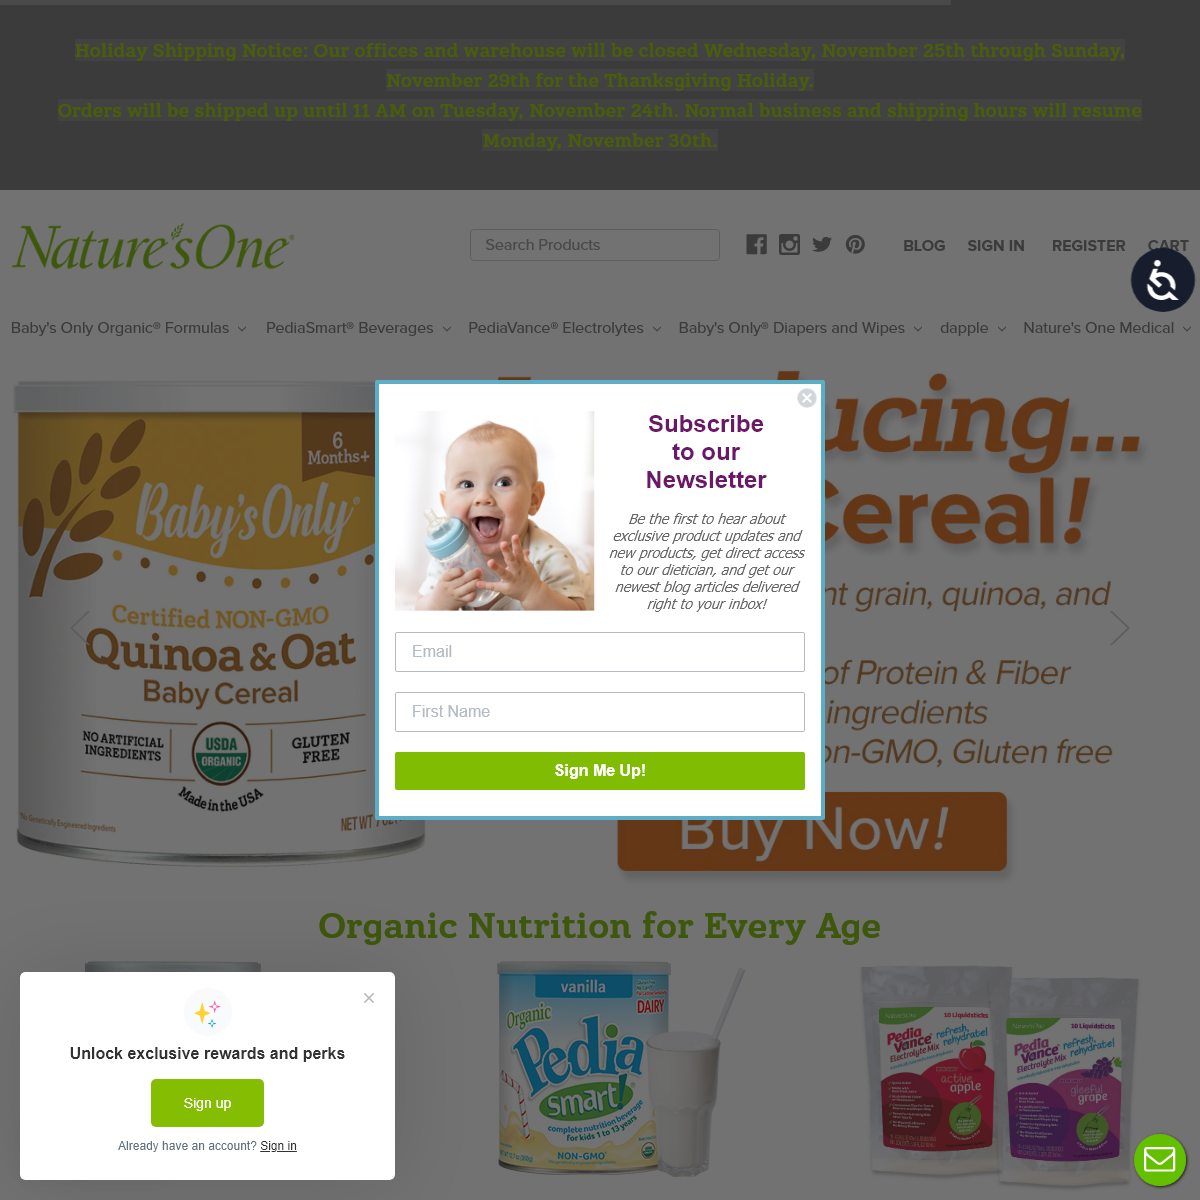 Natures One® - Since 1999, a Leader in Organic Nutrition for Any Age